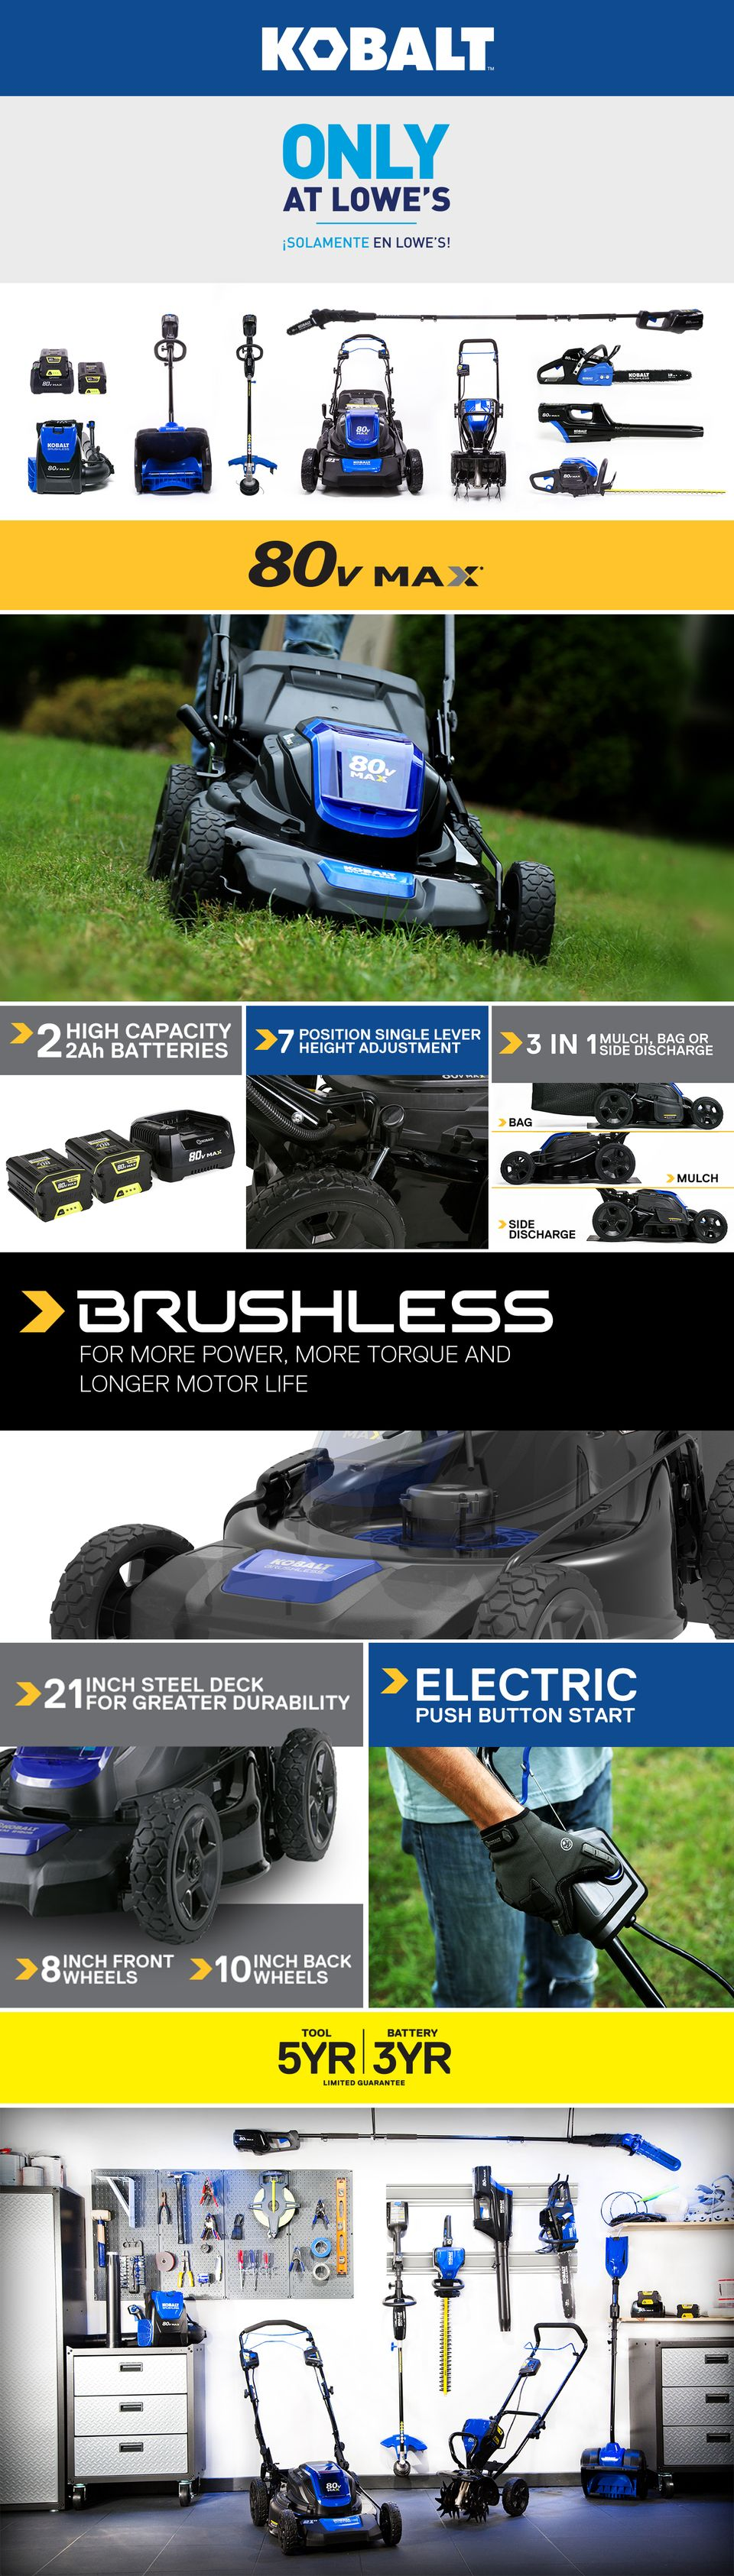 Kobalt 80 Volt Max Brushless Lithium Ion 21 In Deck Width Cordless Electric Lawn Mower With Mulching Capability Batteries Included Lowes Com Push Lawn Mower Lawn Mower Mower